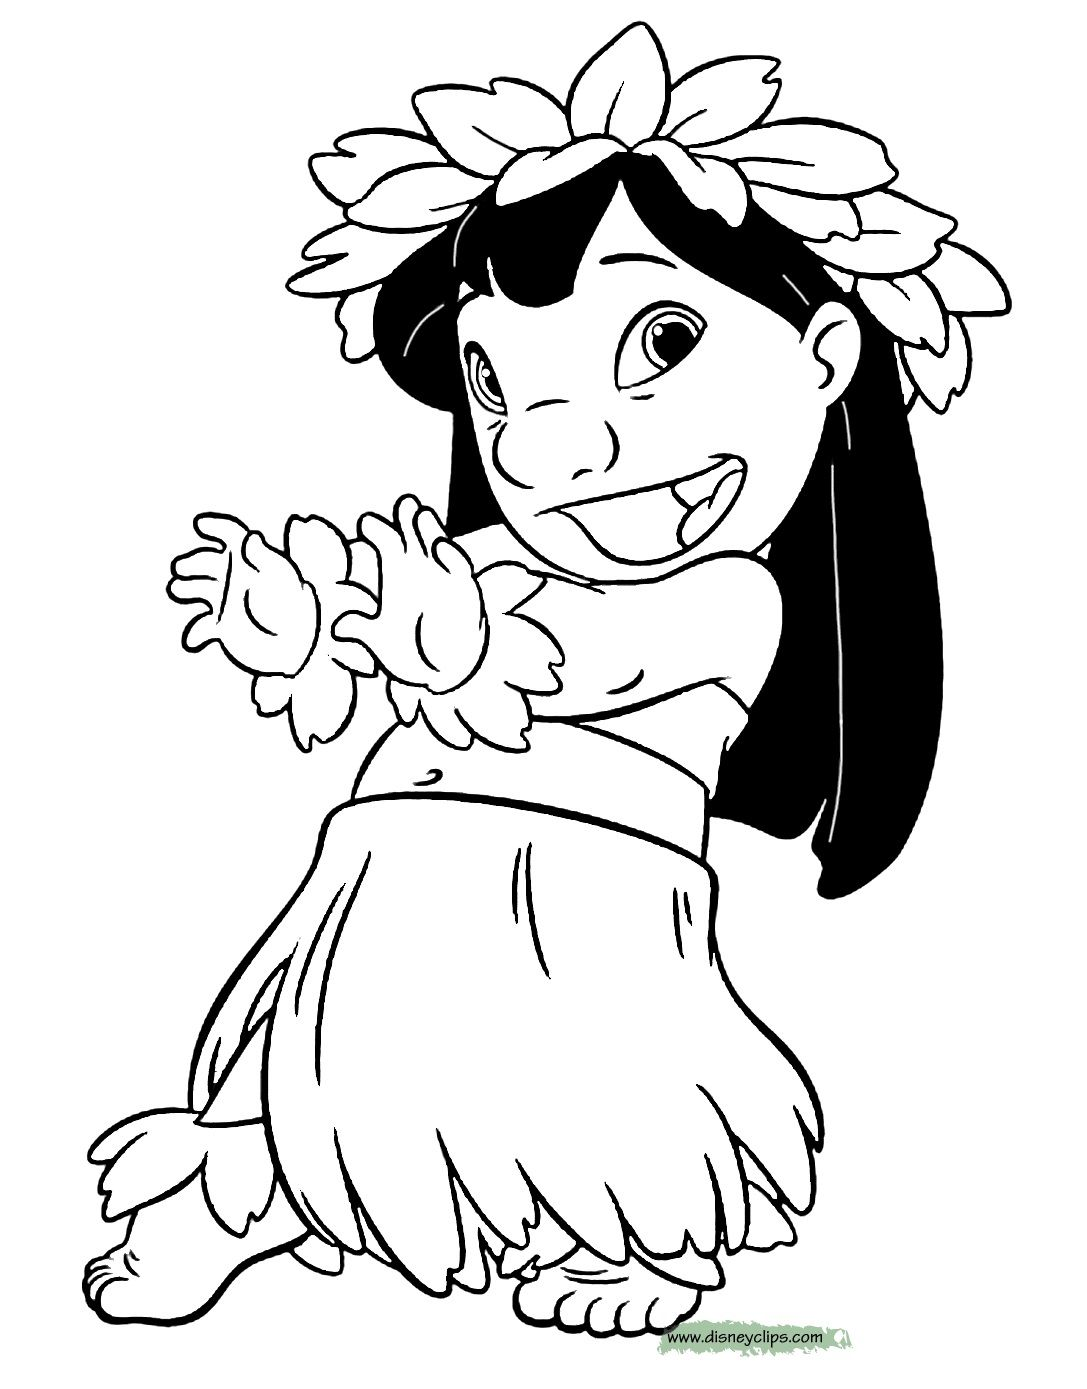 Lilo Stitch Coloring Page y Blank Pattern Lilo